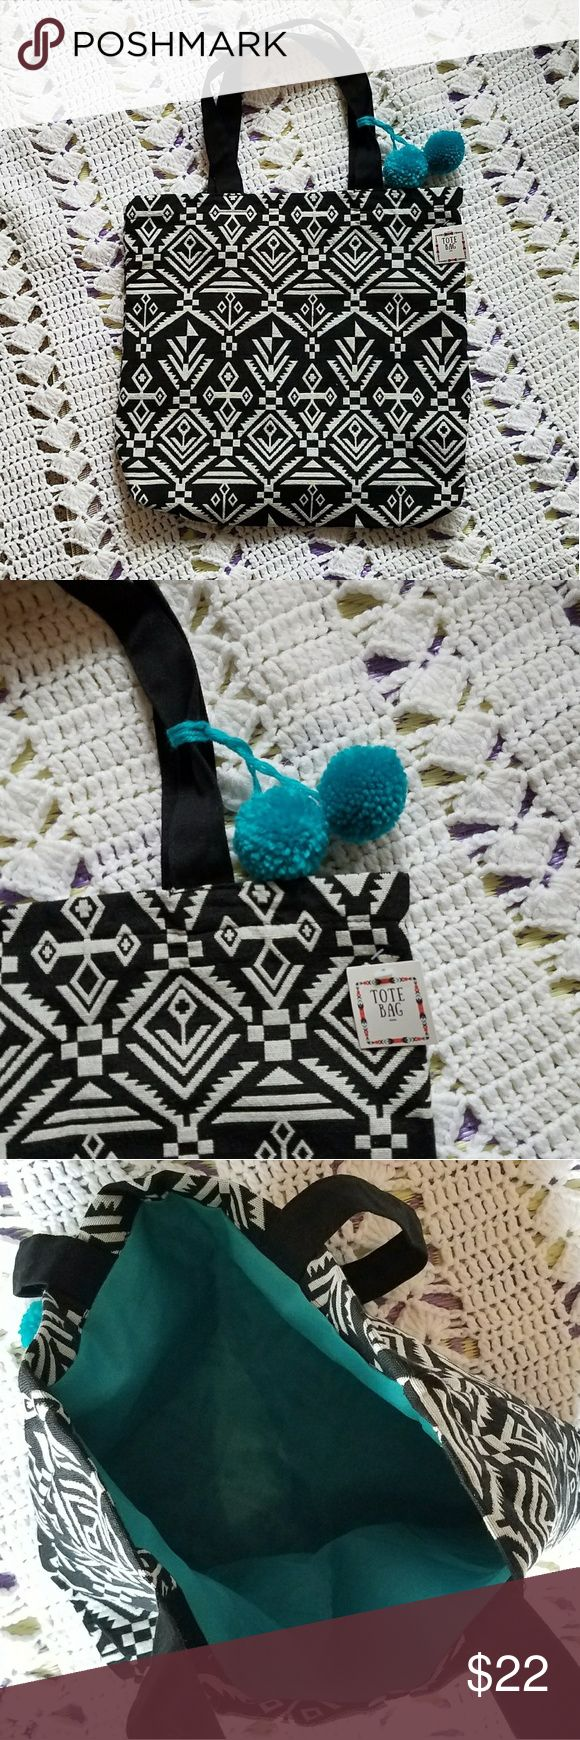 """NWT Lularoe Black & White Tote Bag Brand new Luluroe. Blue pom poms on the handle, tribal print exterior and blue interior. Make it your next beach bag! Original price $35.  Measurements added in photos. Handle has a 7.5"""" drop.  Any questions ask! :) LuLaRoe Bags Totes"""